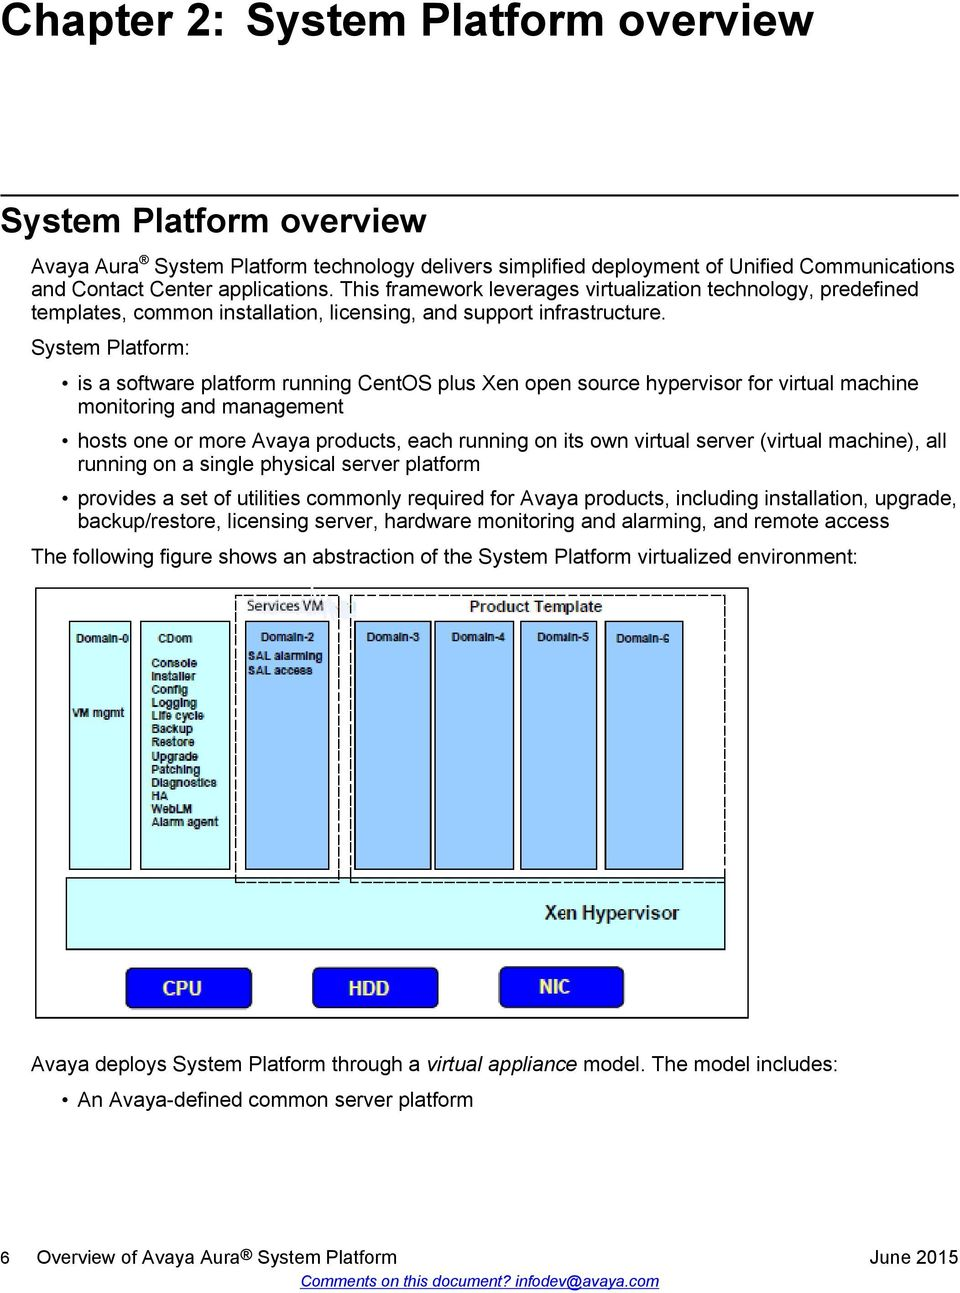 System Platform: is a software platform running CentOS plus Xen open source hypervisor for virtual machine monitoring and management hosts one or more Avaya products, each running on its own virtual